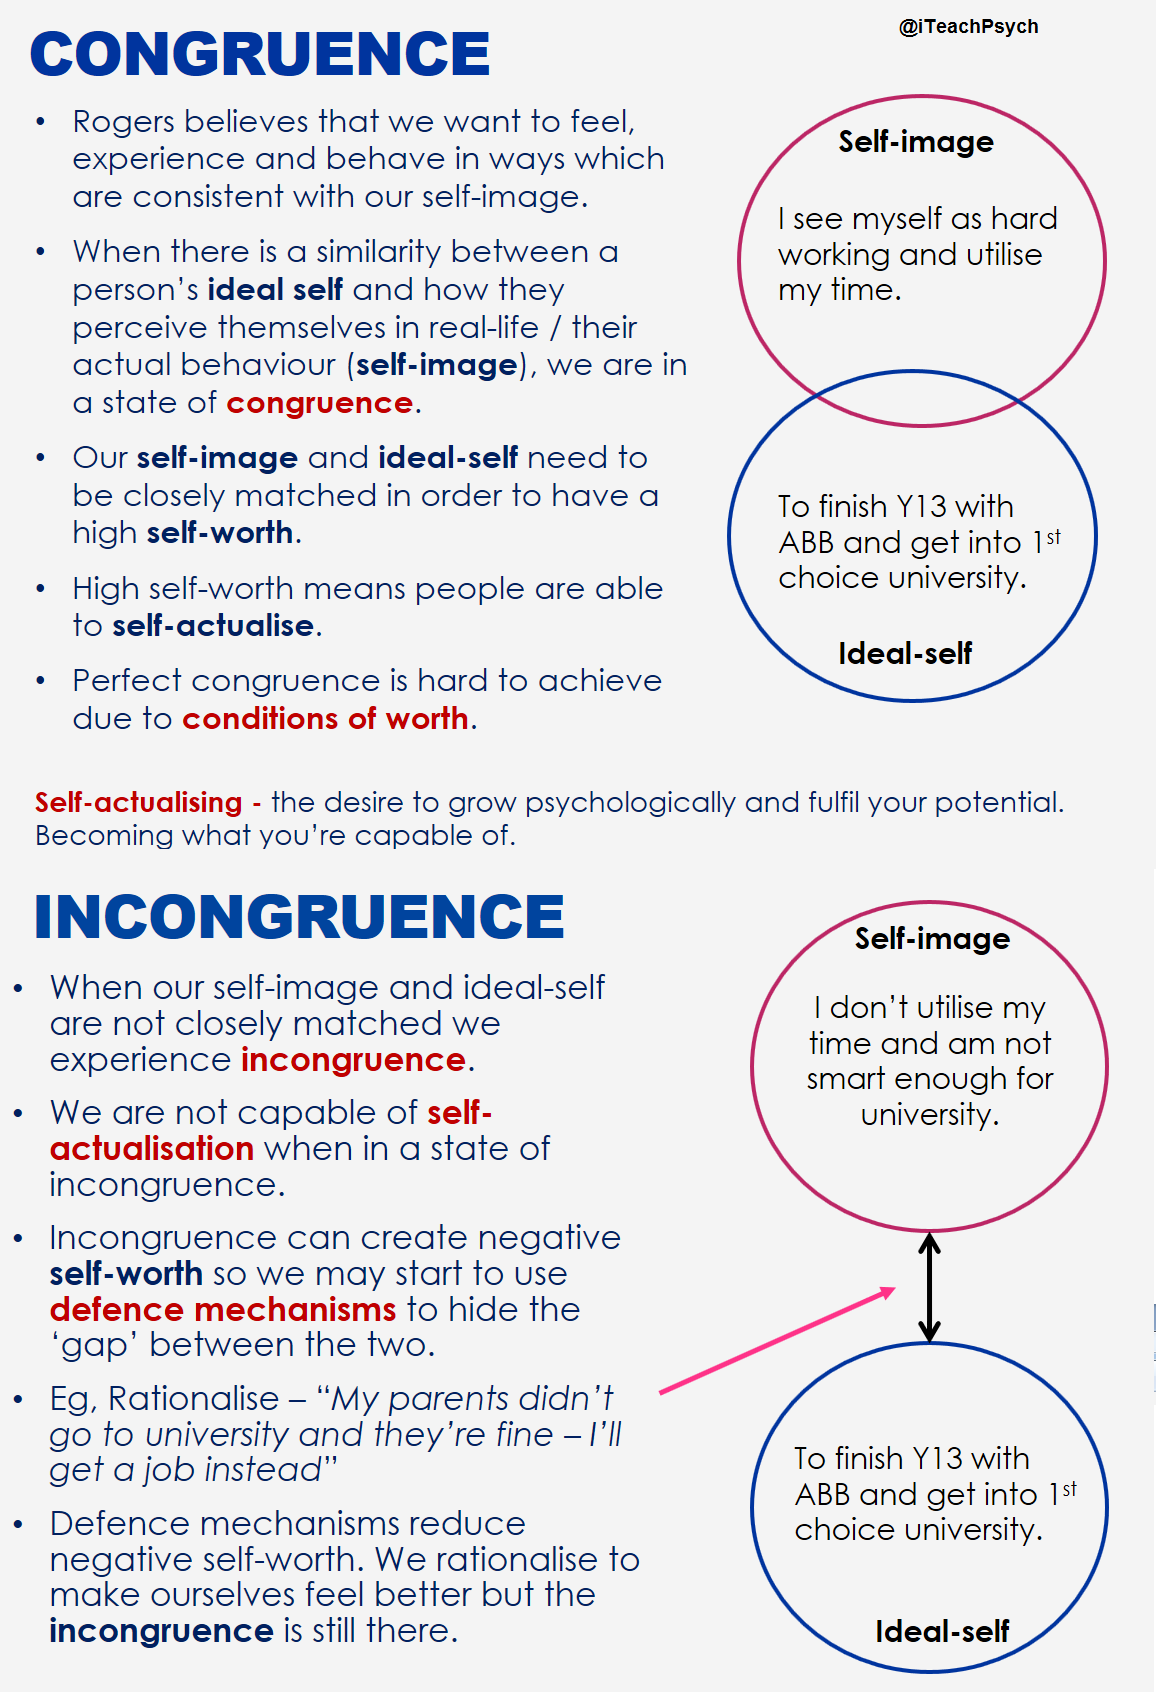 Congruence and incongruence | Counseling psychology